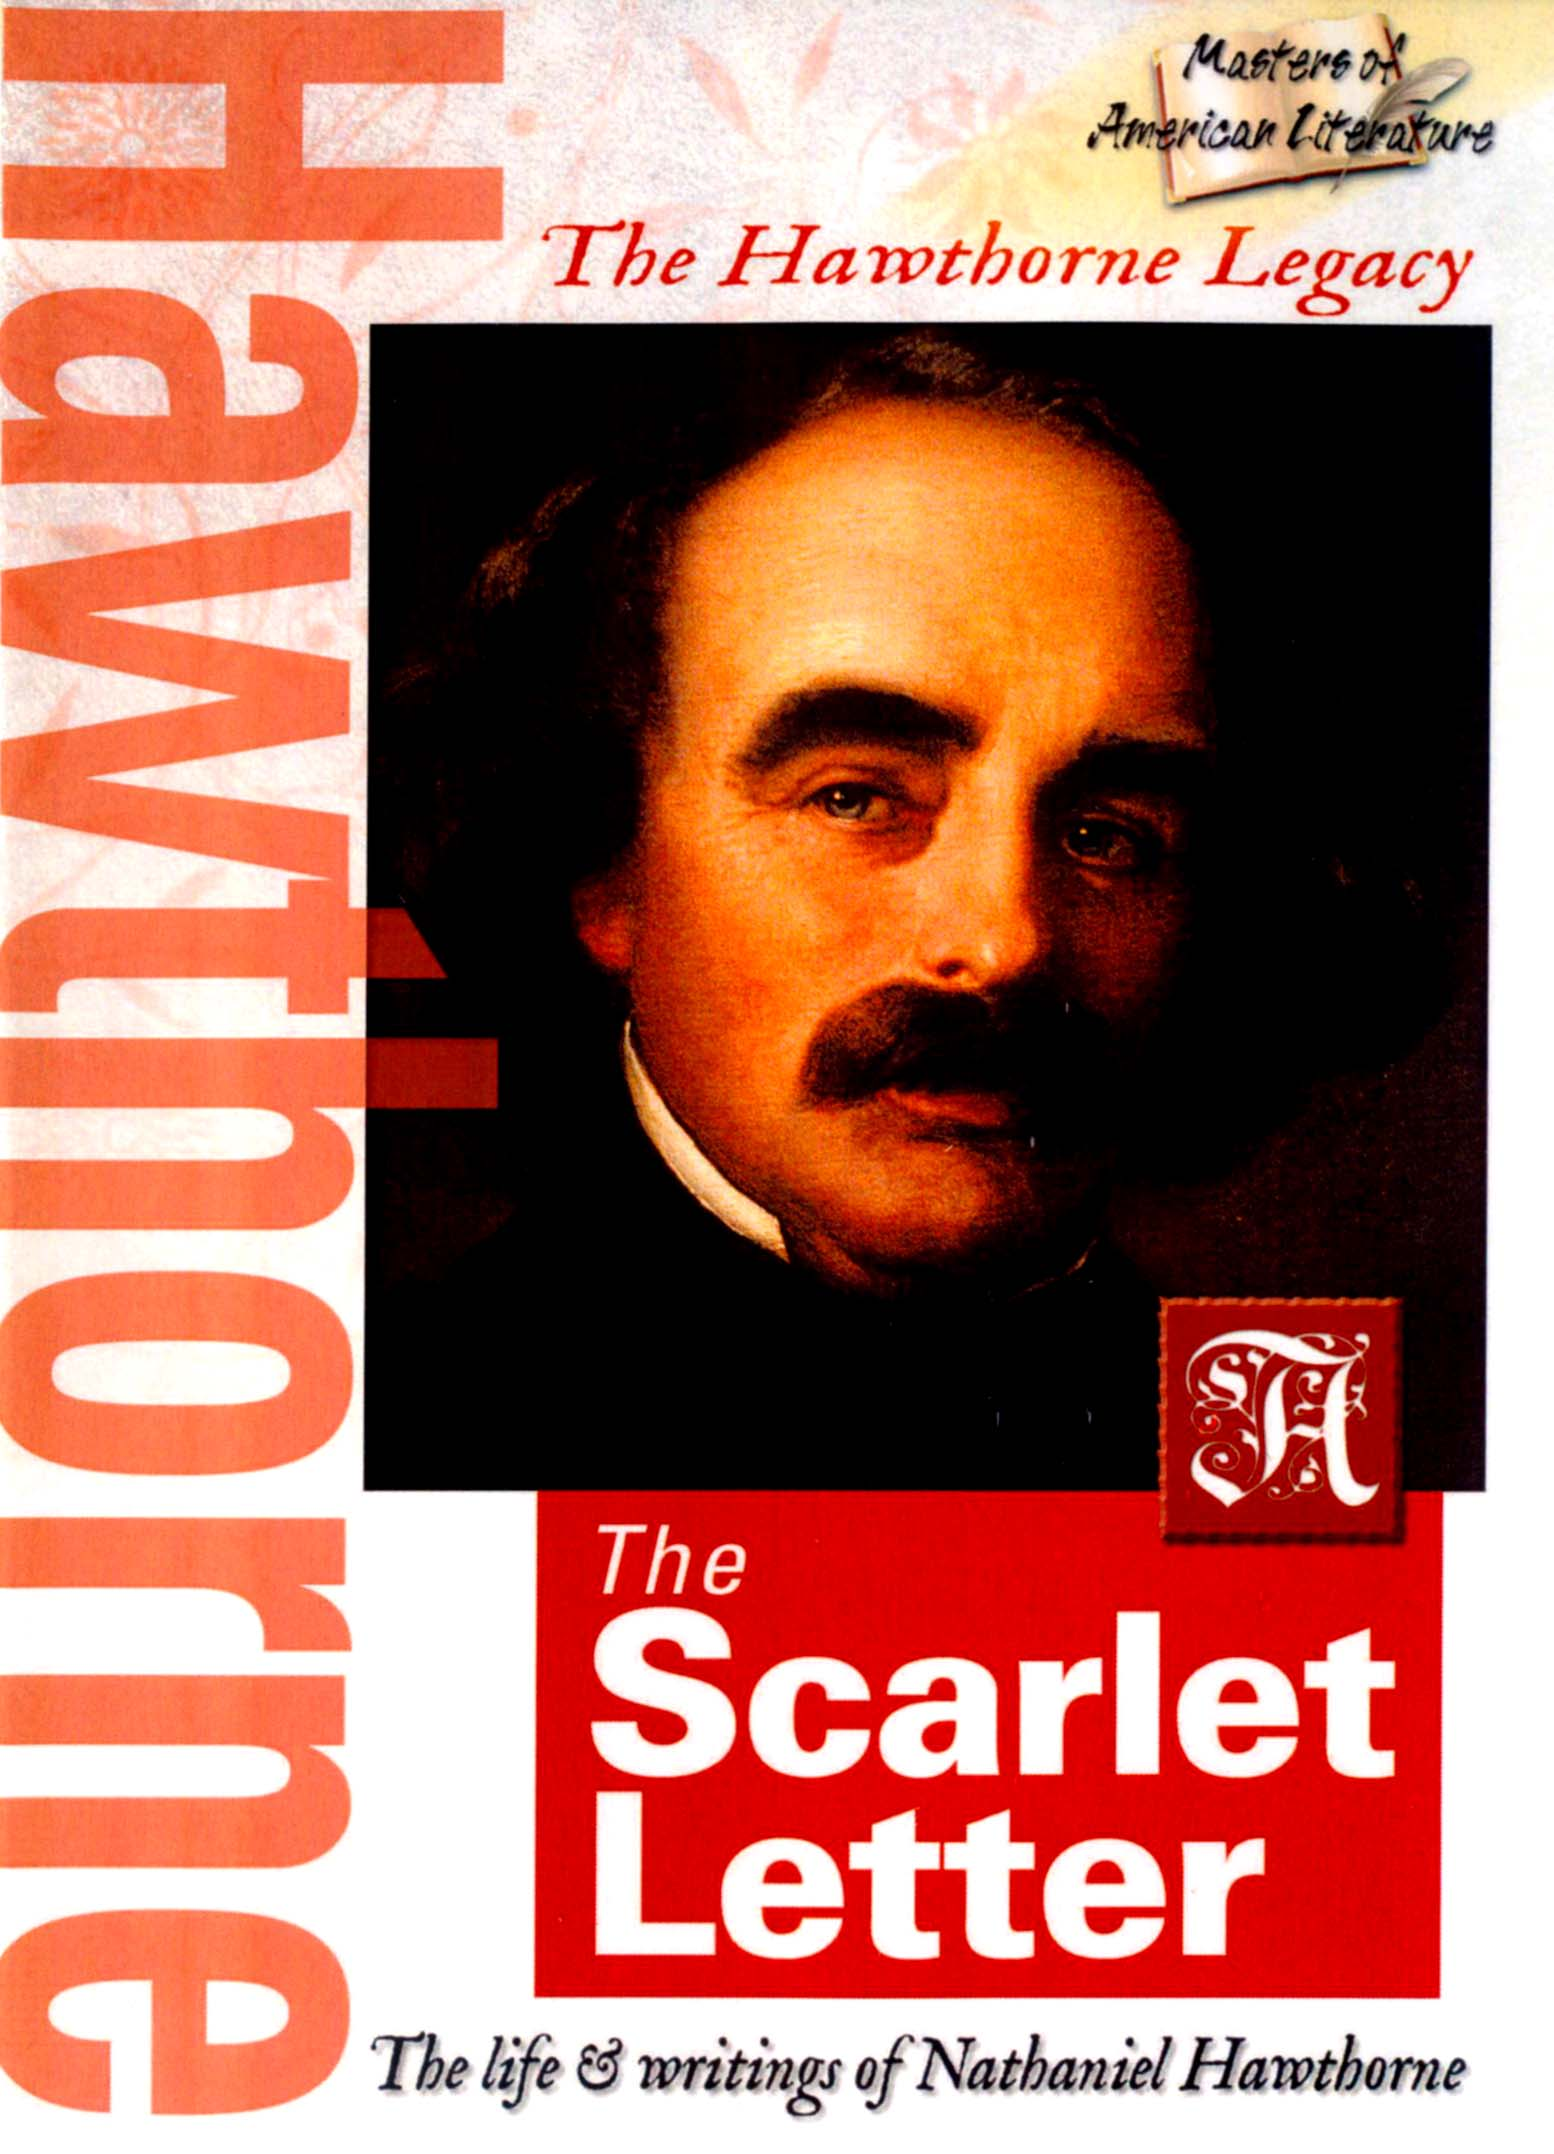 the culmination of everything about nathaniel hawthornes life in the scarlet letter